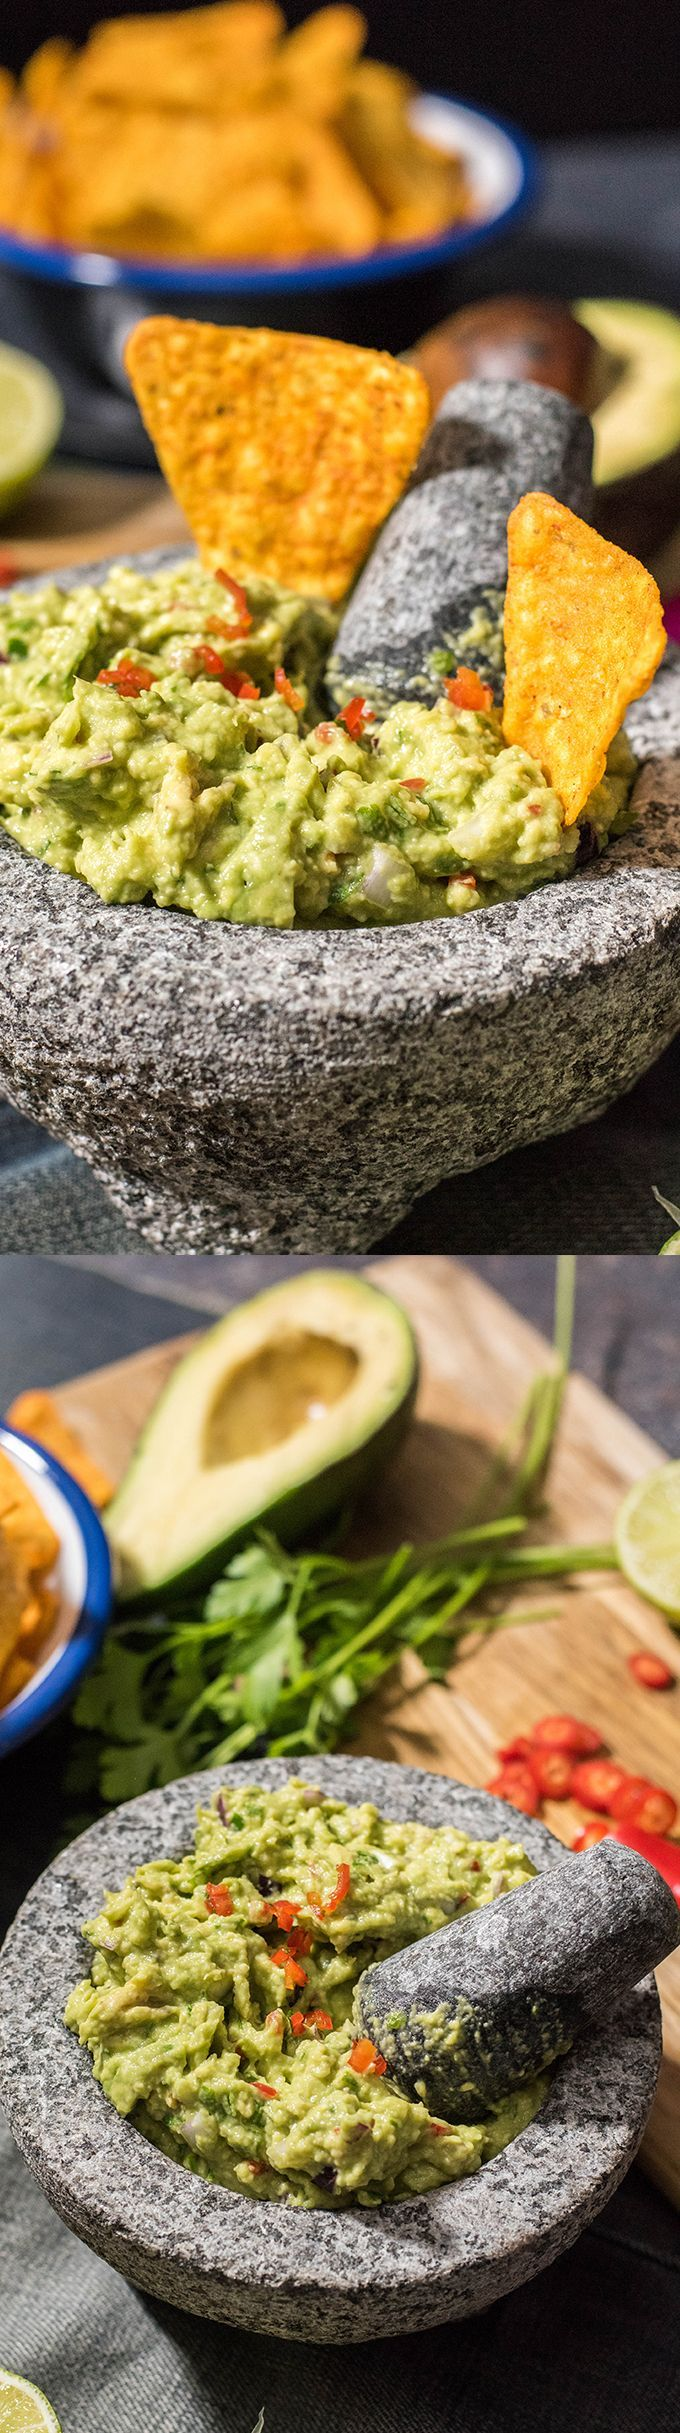 This is my best guacamole. You will love red chili pepper in it. Best movie night or game day treat ever!